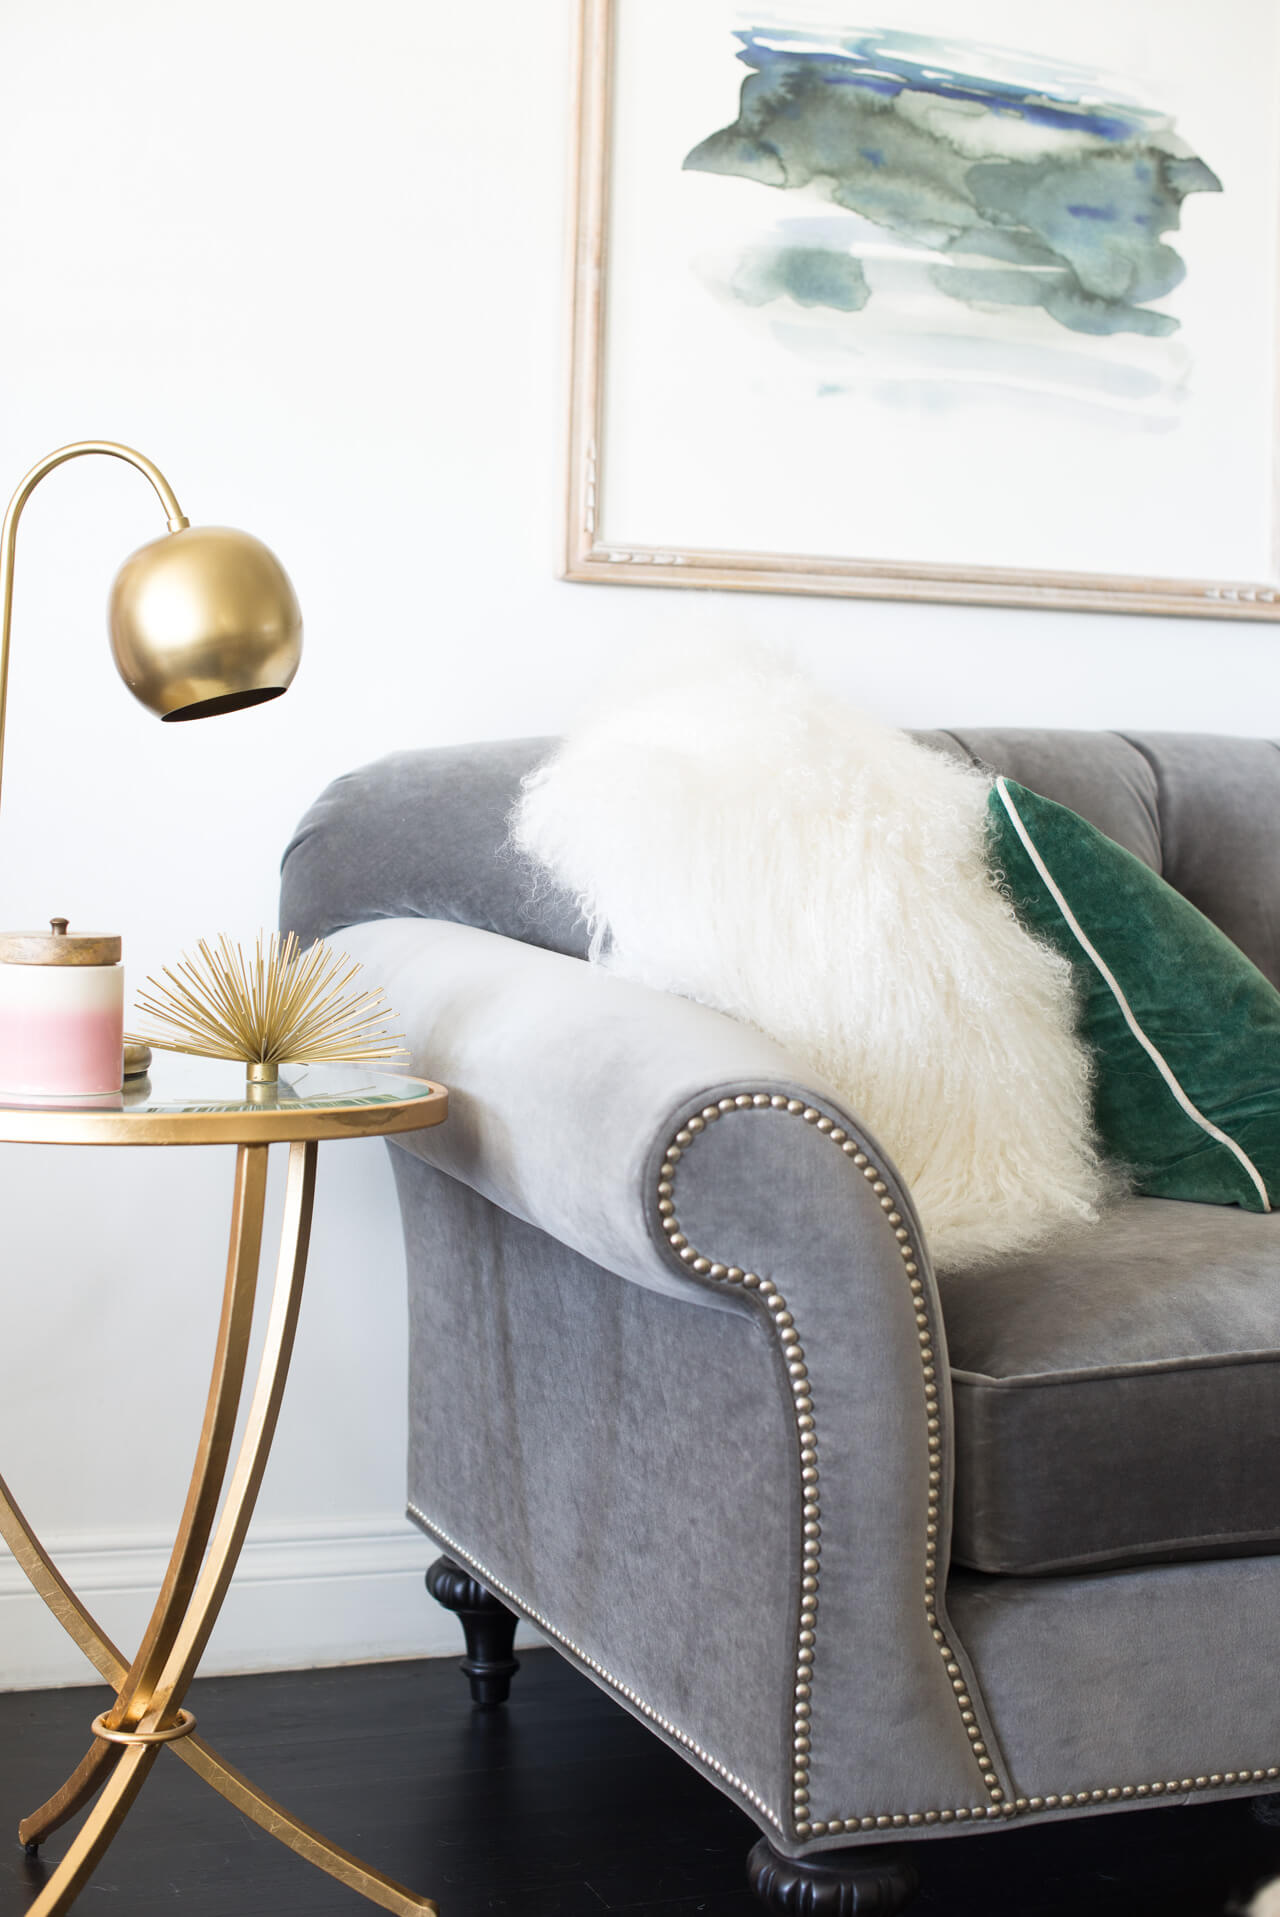 brass table lamp with gray tufted couch